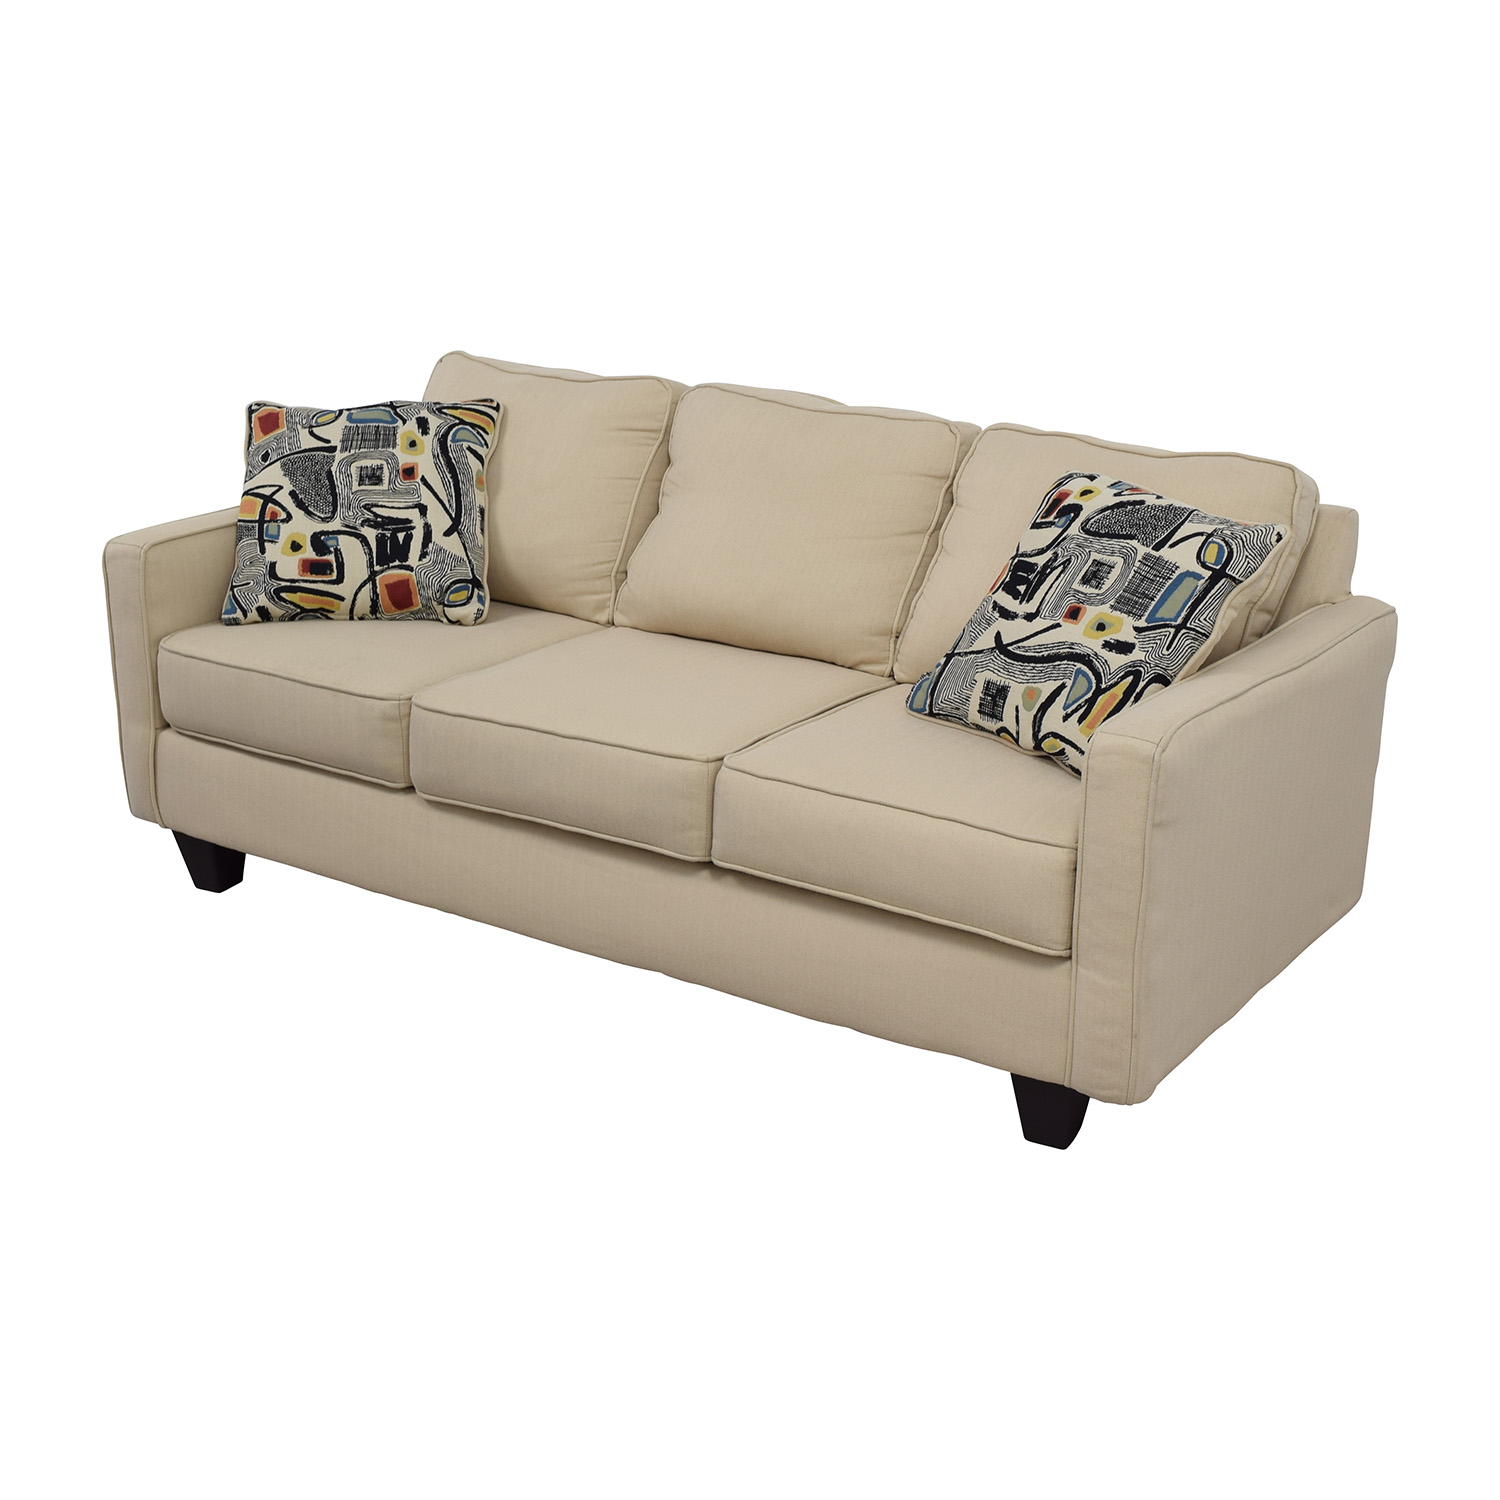 Wayfair Wayfair AllModern Three Cushion Beige